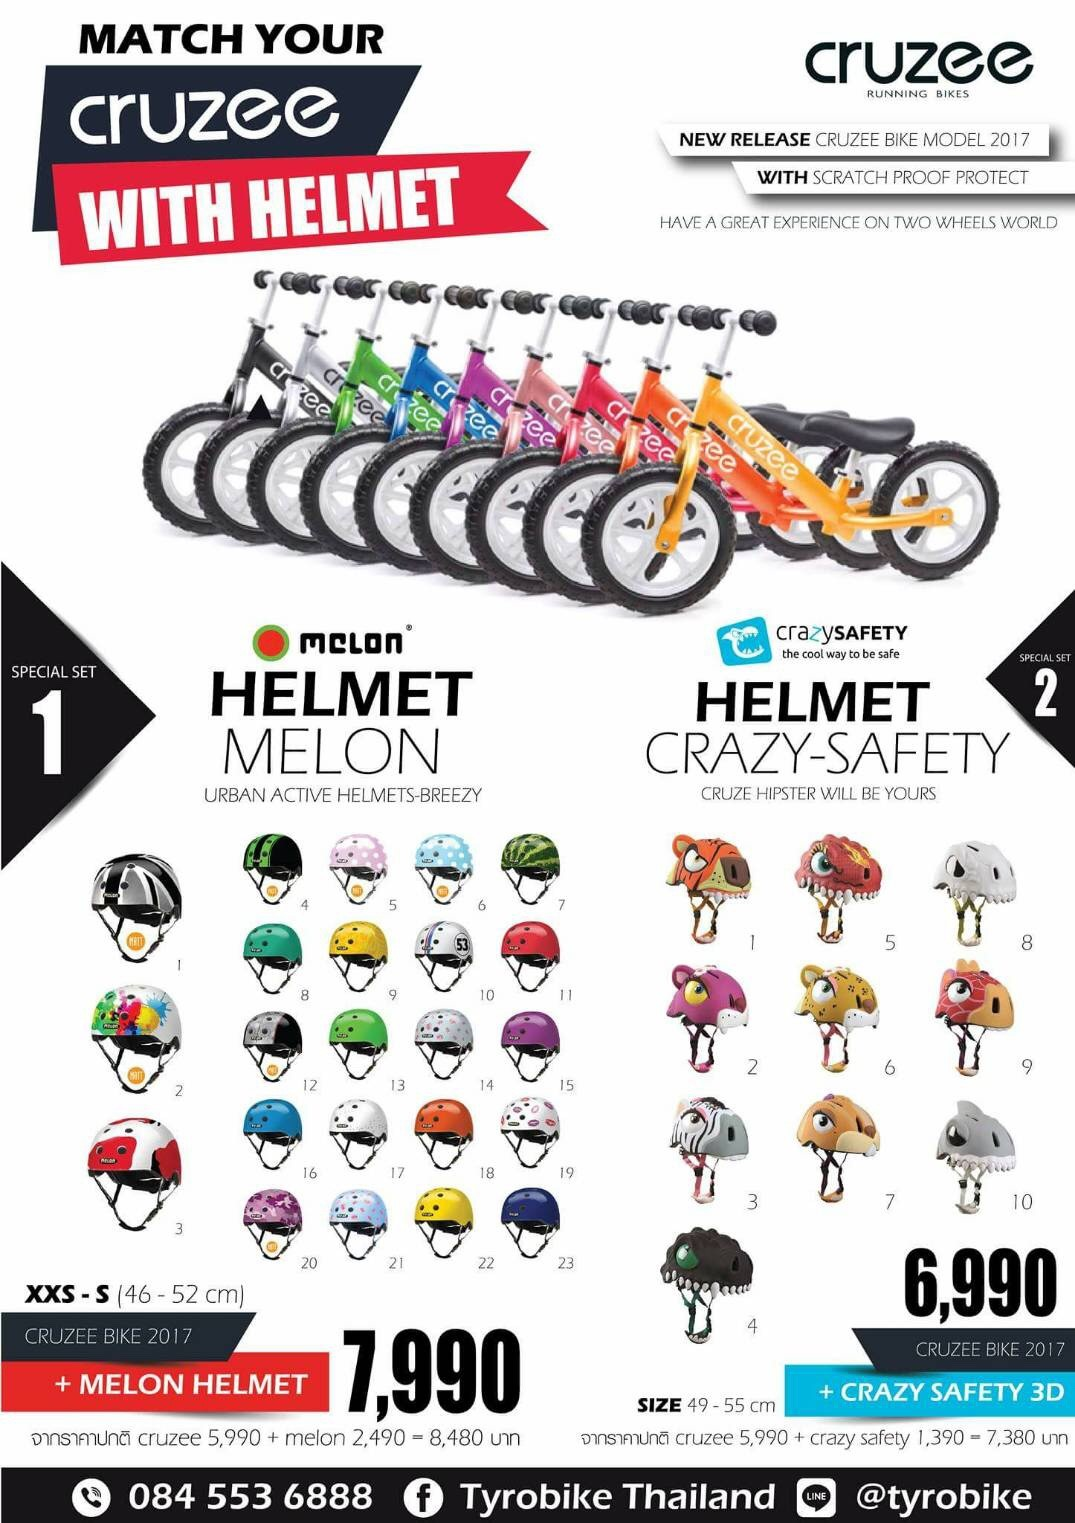 Match your Cruzee with Helmet